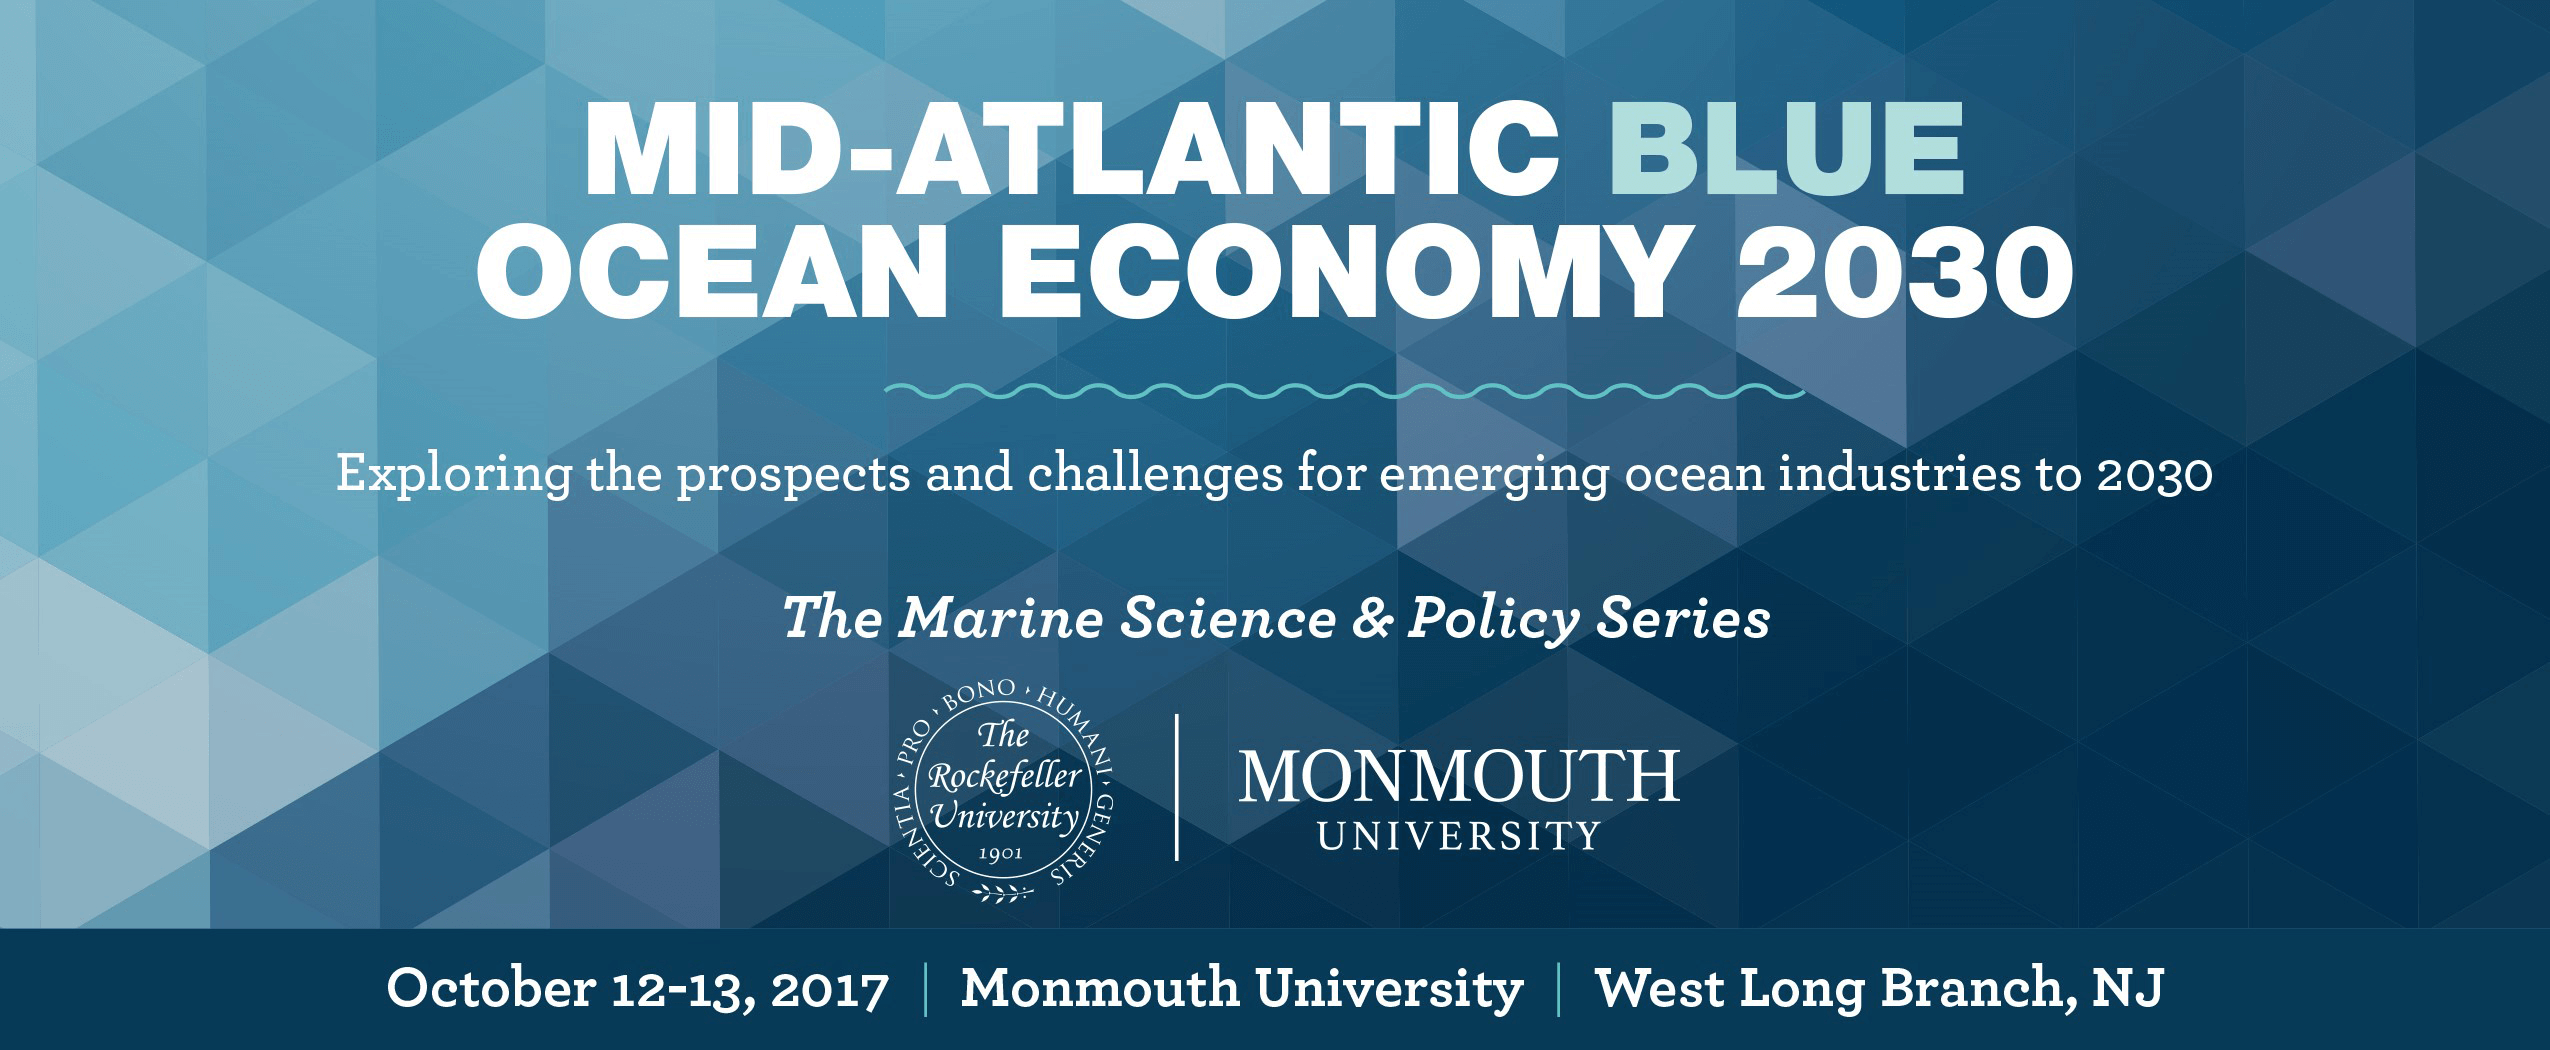 Mid-Atlantic Blue Ocean Economy 2030